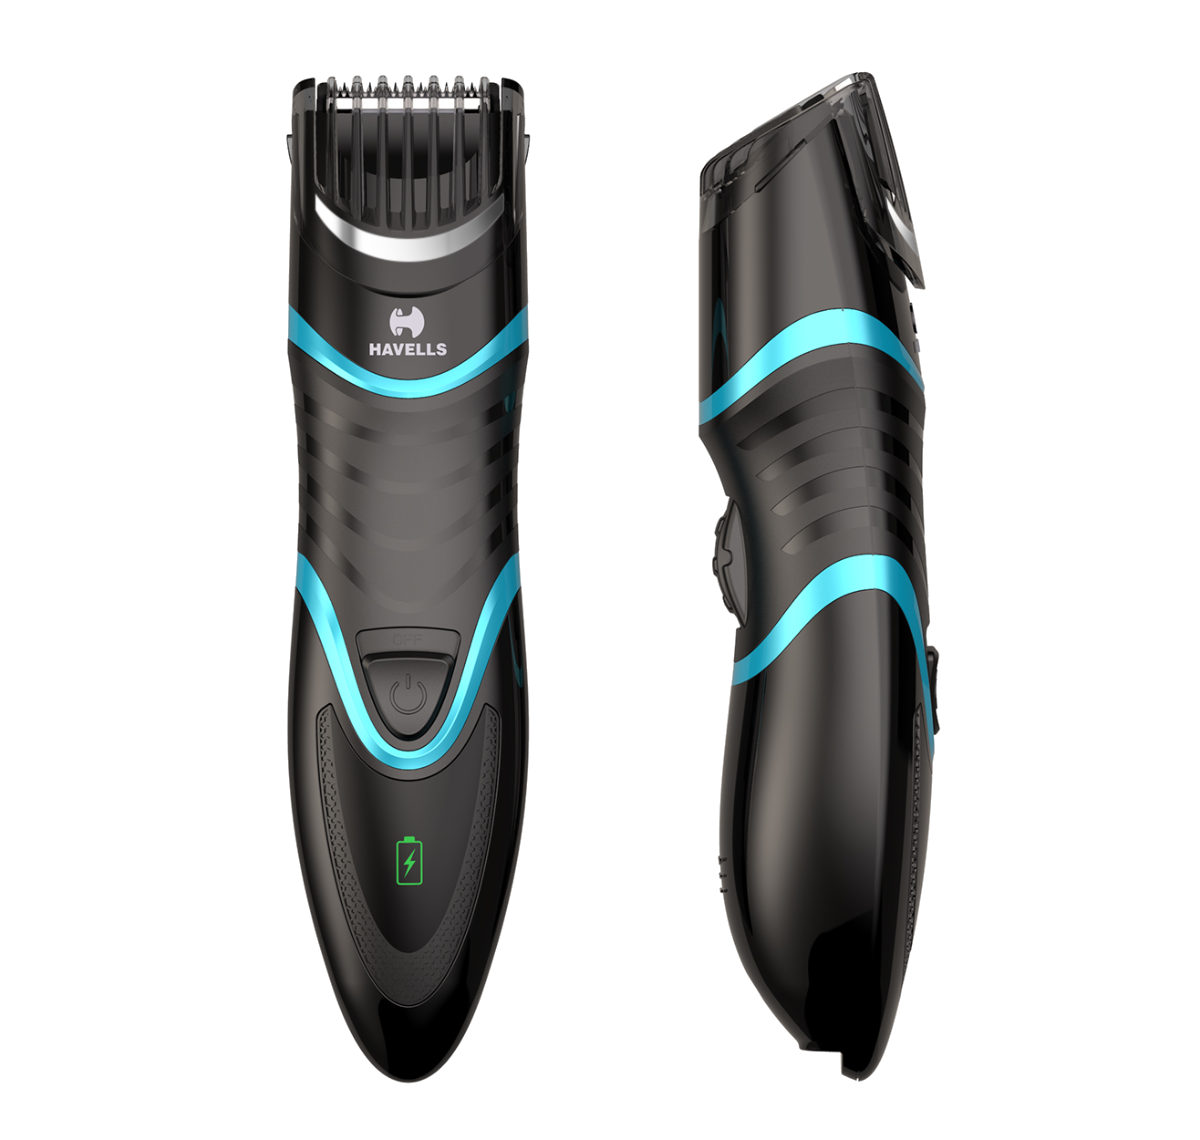 USB Quick Charge Zoom Wheel Beard Trimmer (Black/Blue)